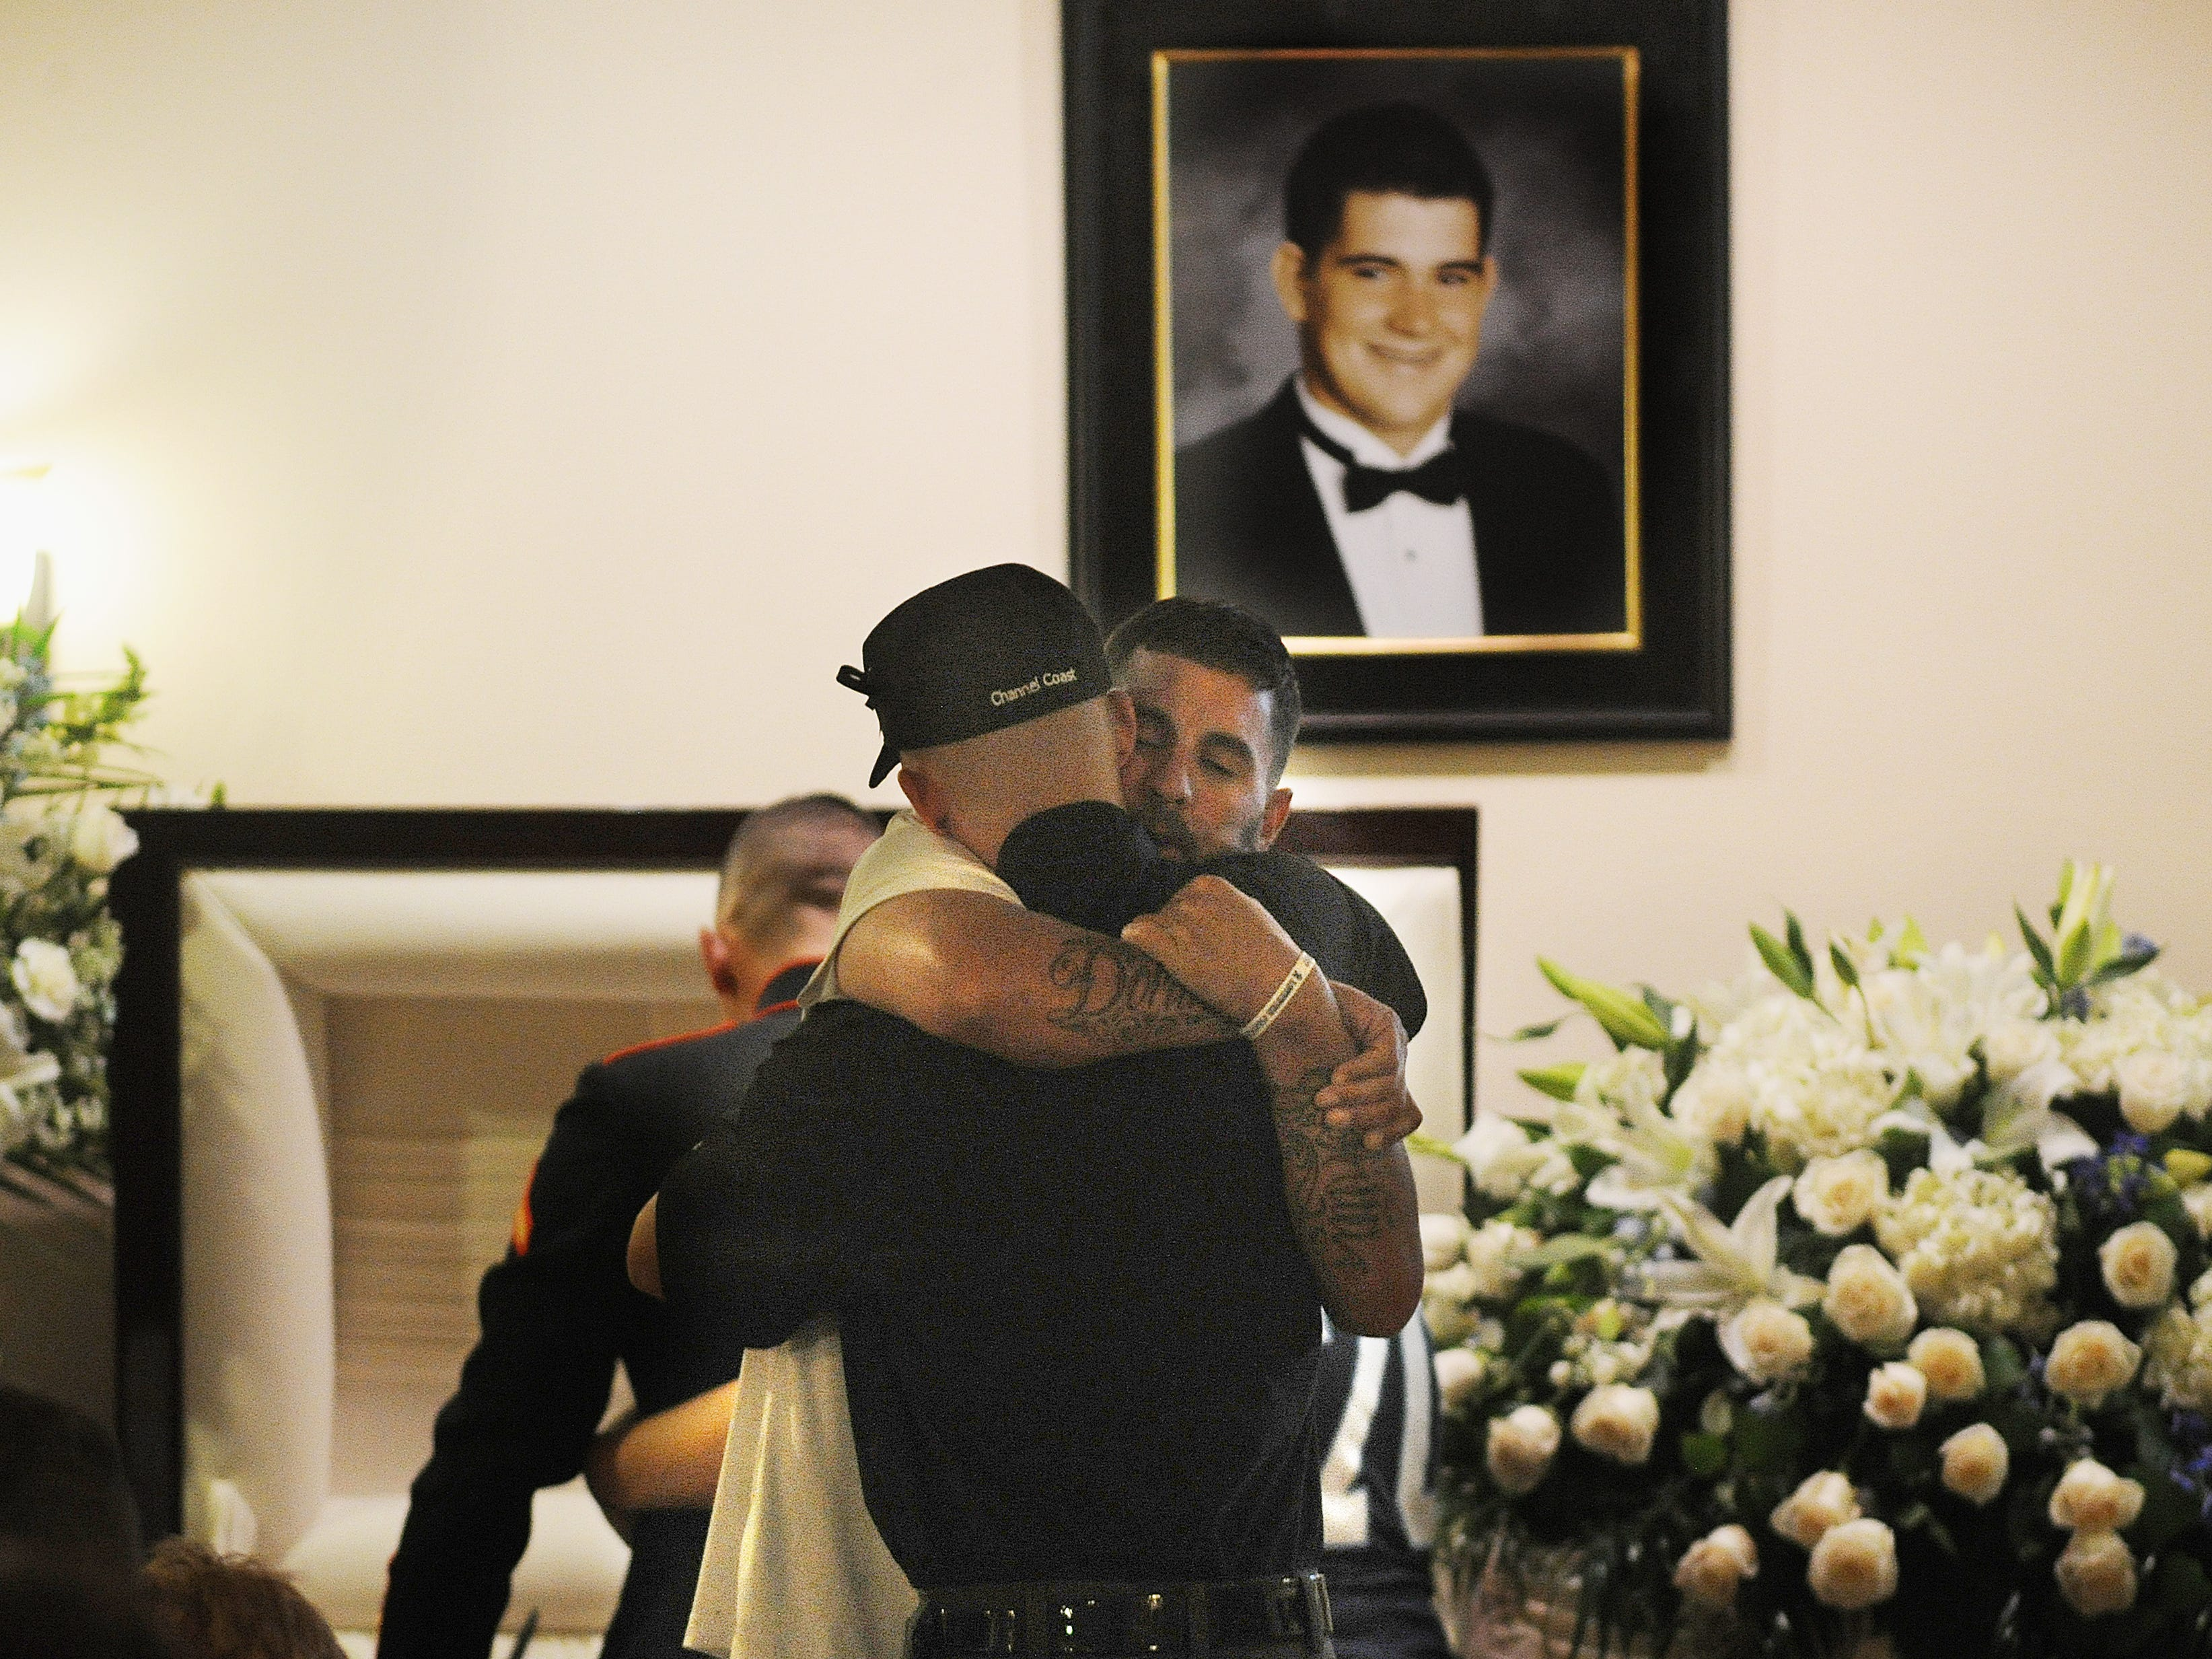 Jason Coffman, facing camera, father of Cody Coffman, gets a hug from a friend in front of the casket at a memorial service in honor of Cody, who was killed in the Borderline shooting in Thousand Oaks. About 1,000 people attended the service at the Perez Family Chapel.